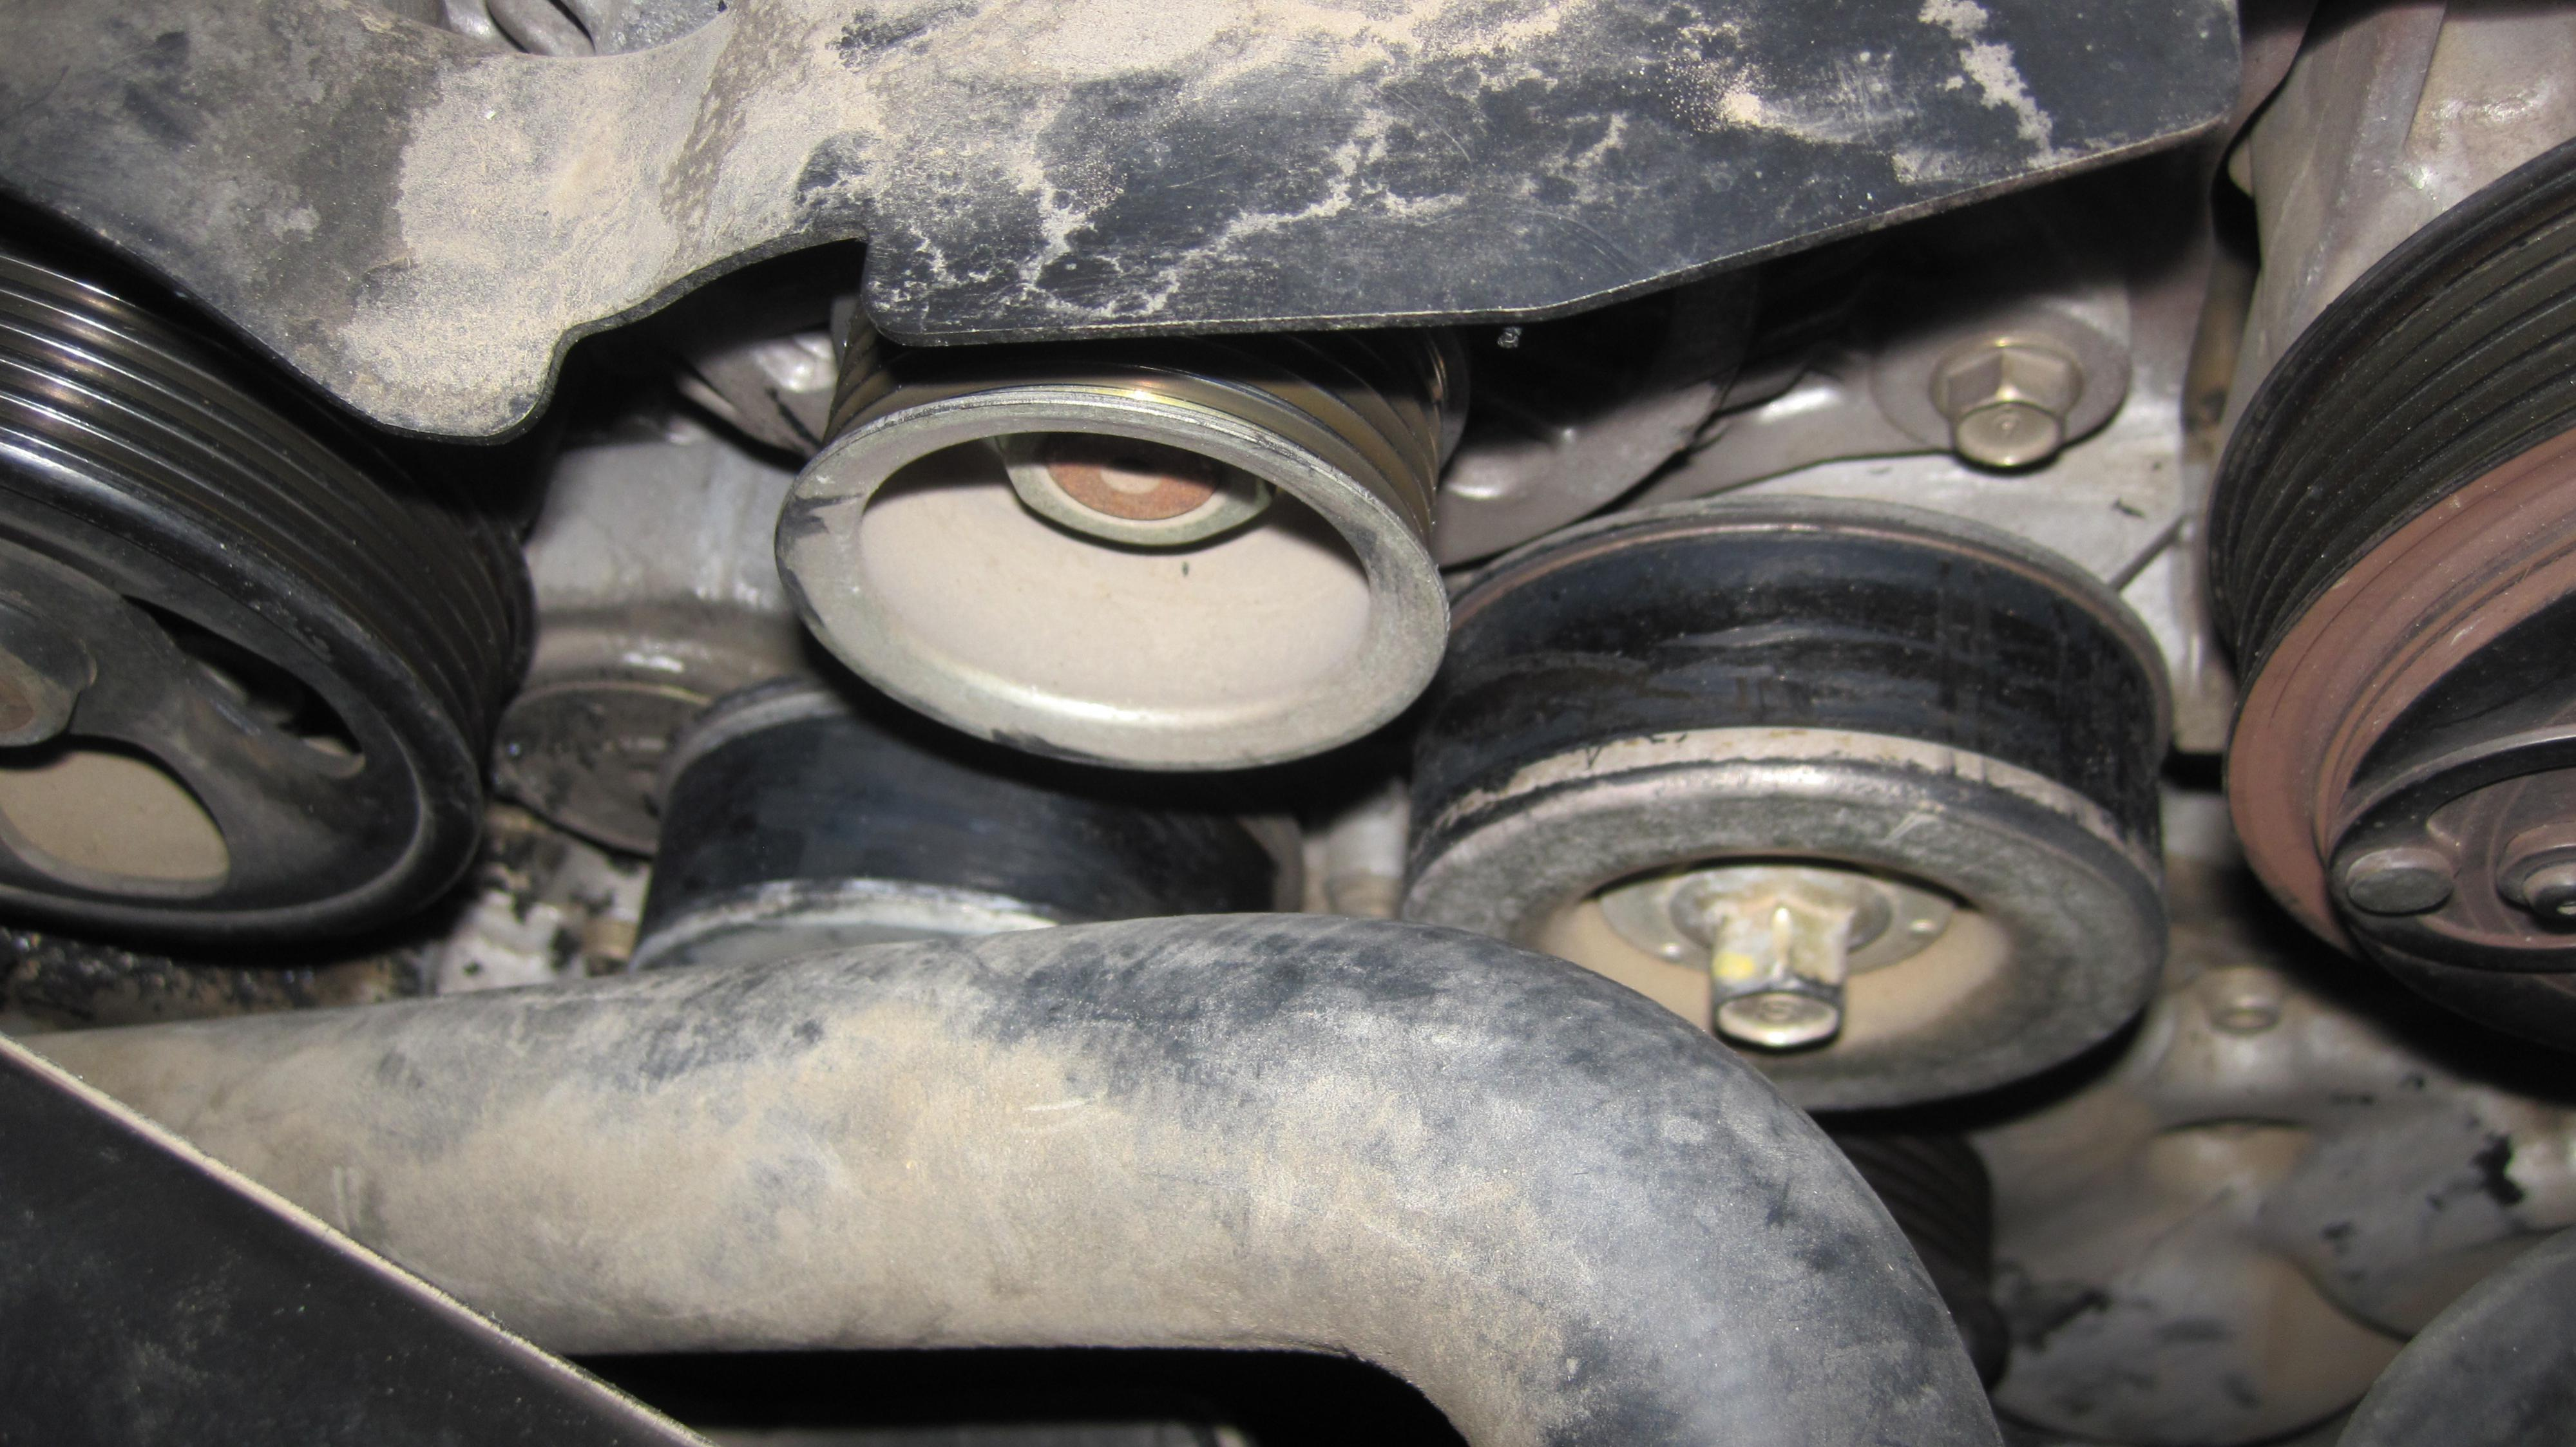 Nissan Pathfinder Belt Routing Diagram together with 163cc Serpentine Belt Diagram Route 2005 Dodge Ram 1500 also Epdm Belt Wear Diagnosis together with 39708 H6 Serpentine Belt Pulley Tensioner Replacement 2 together with Ford 302 Short Water Pump. on serpentine belt tensioner pulley